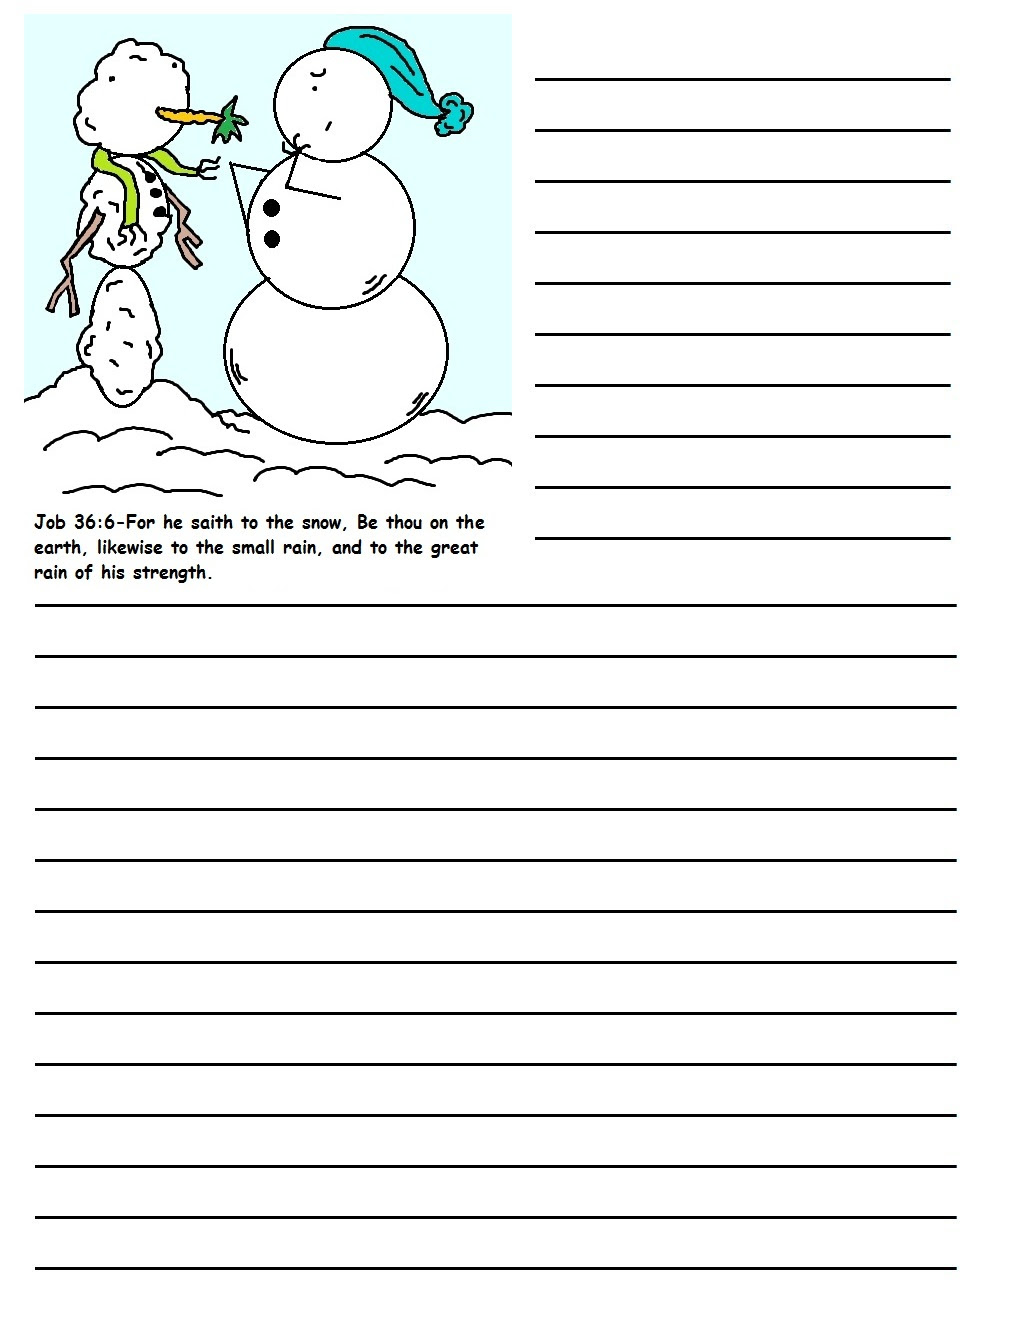 Editable Handwriting Paper Template | Quit Claim Deed Form Duval ...